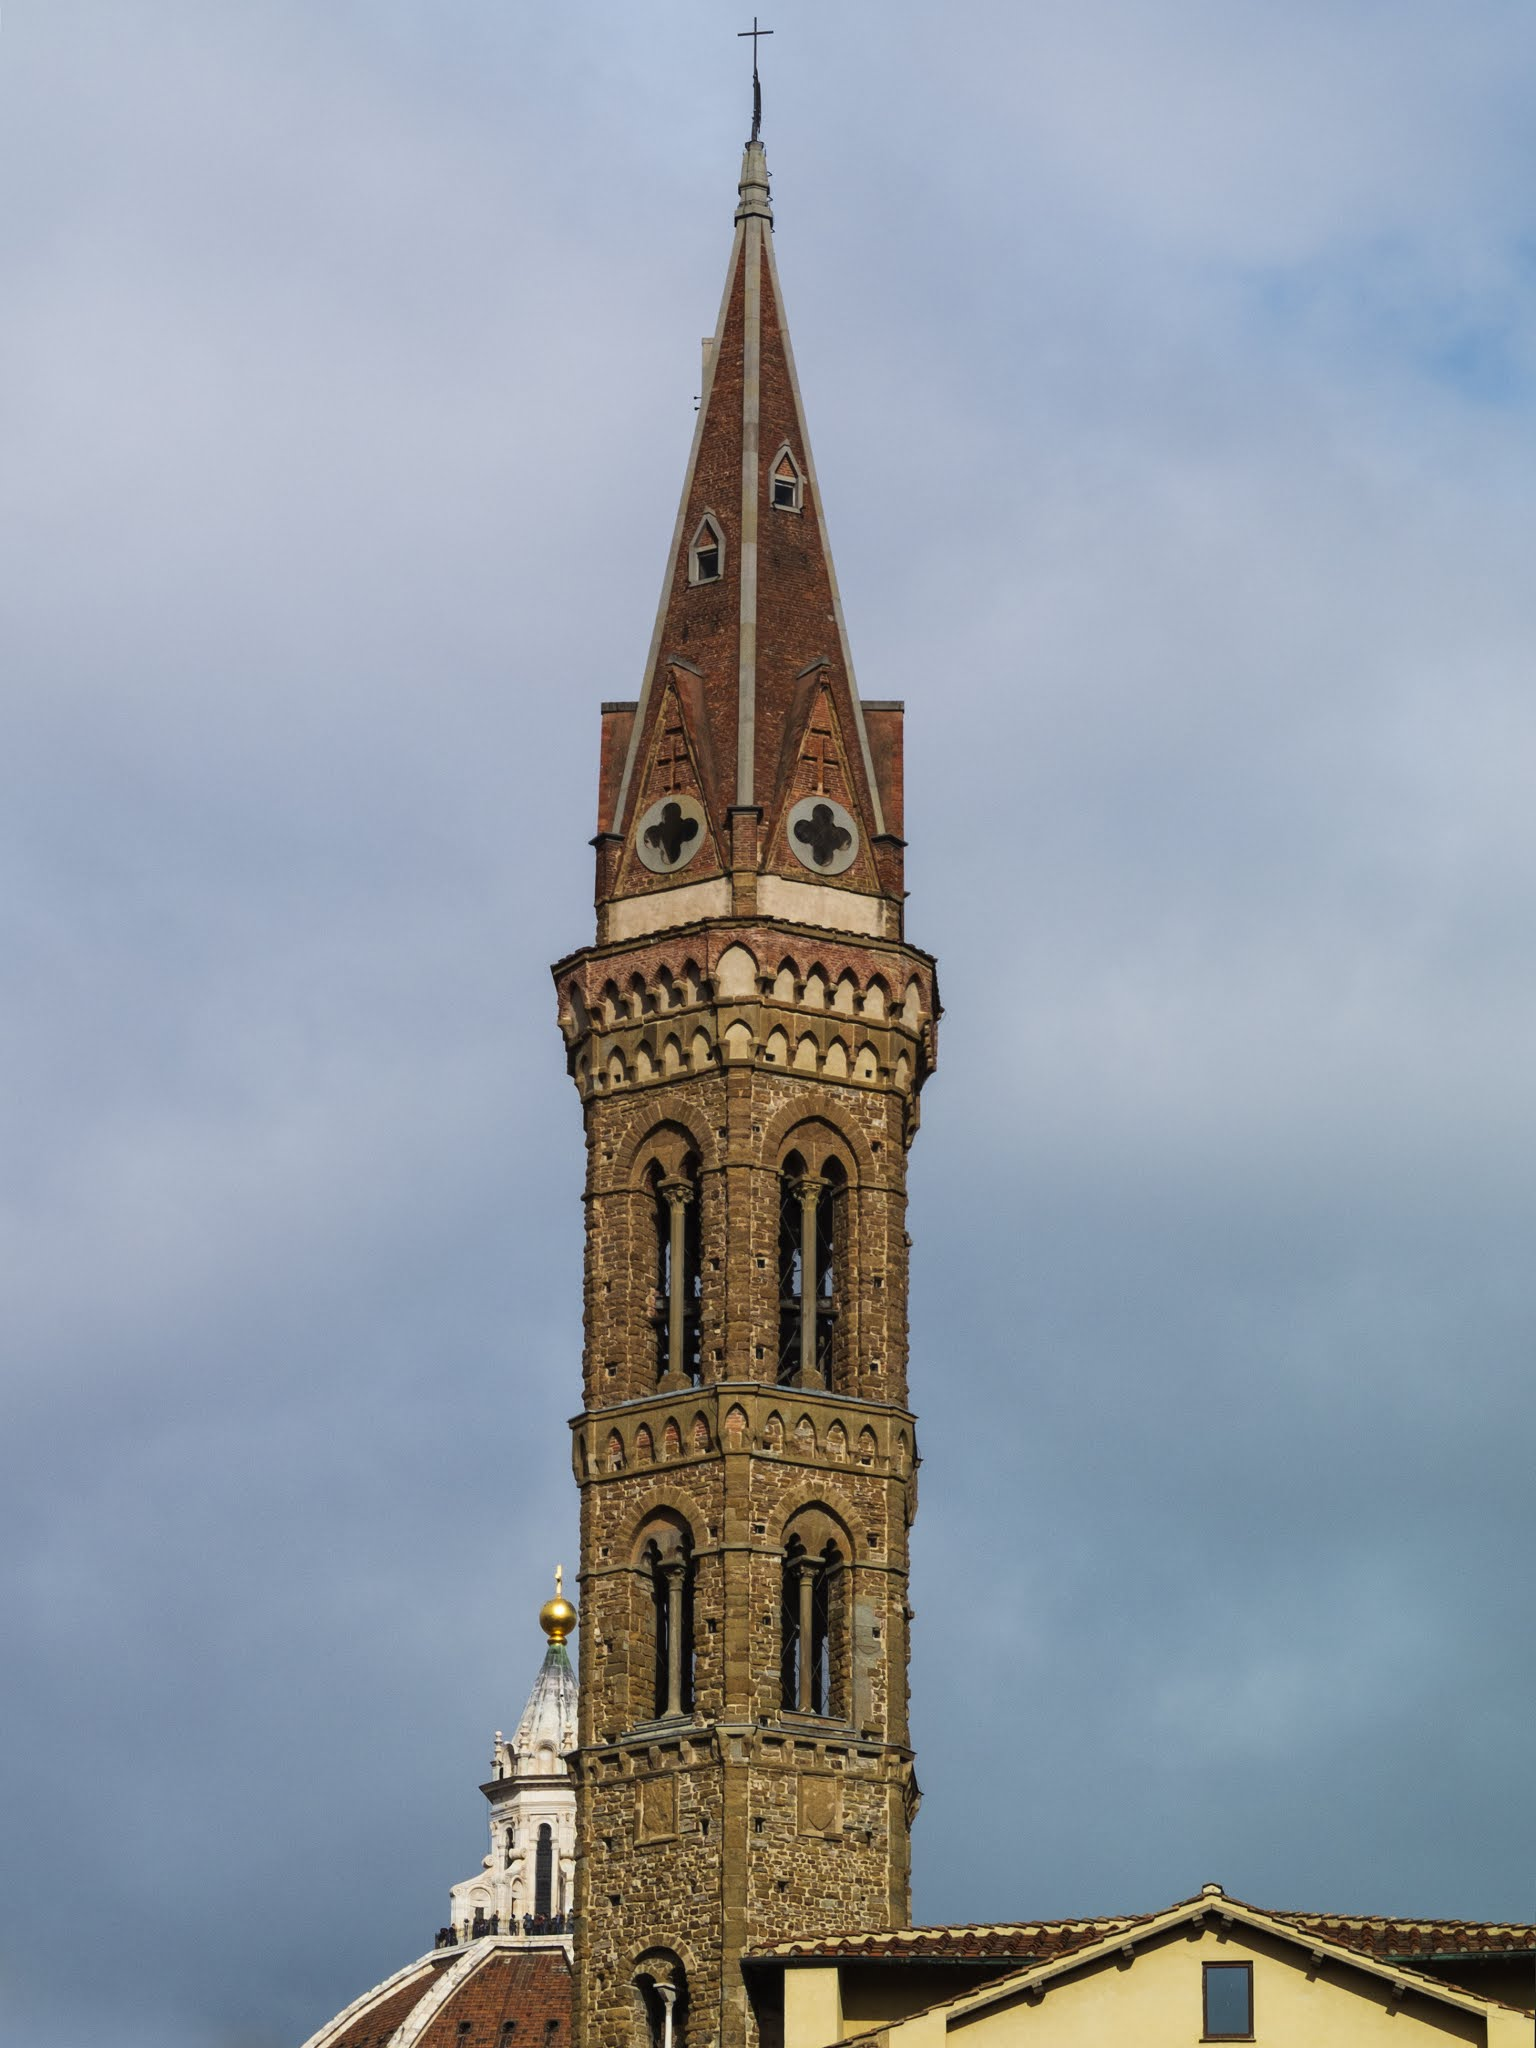 View of  Badia Fiorentina - Monastero tower in Florence